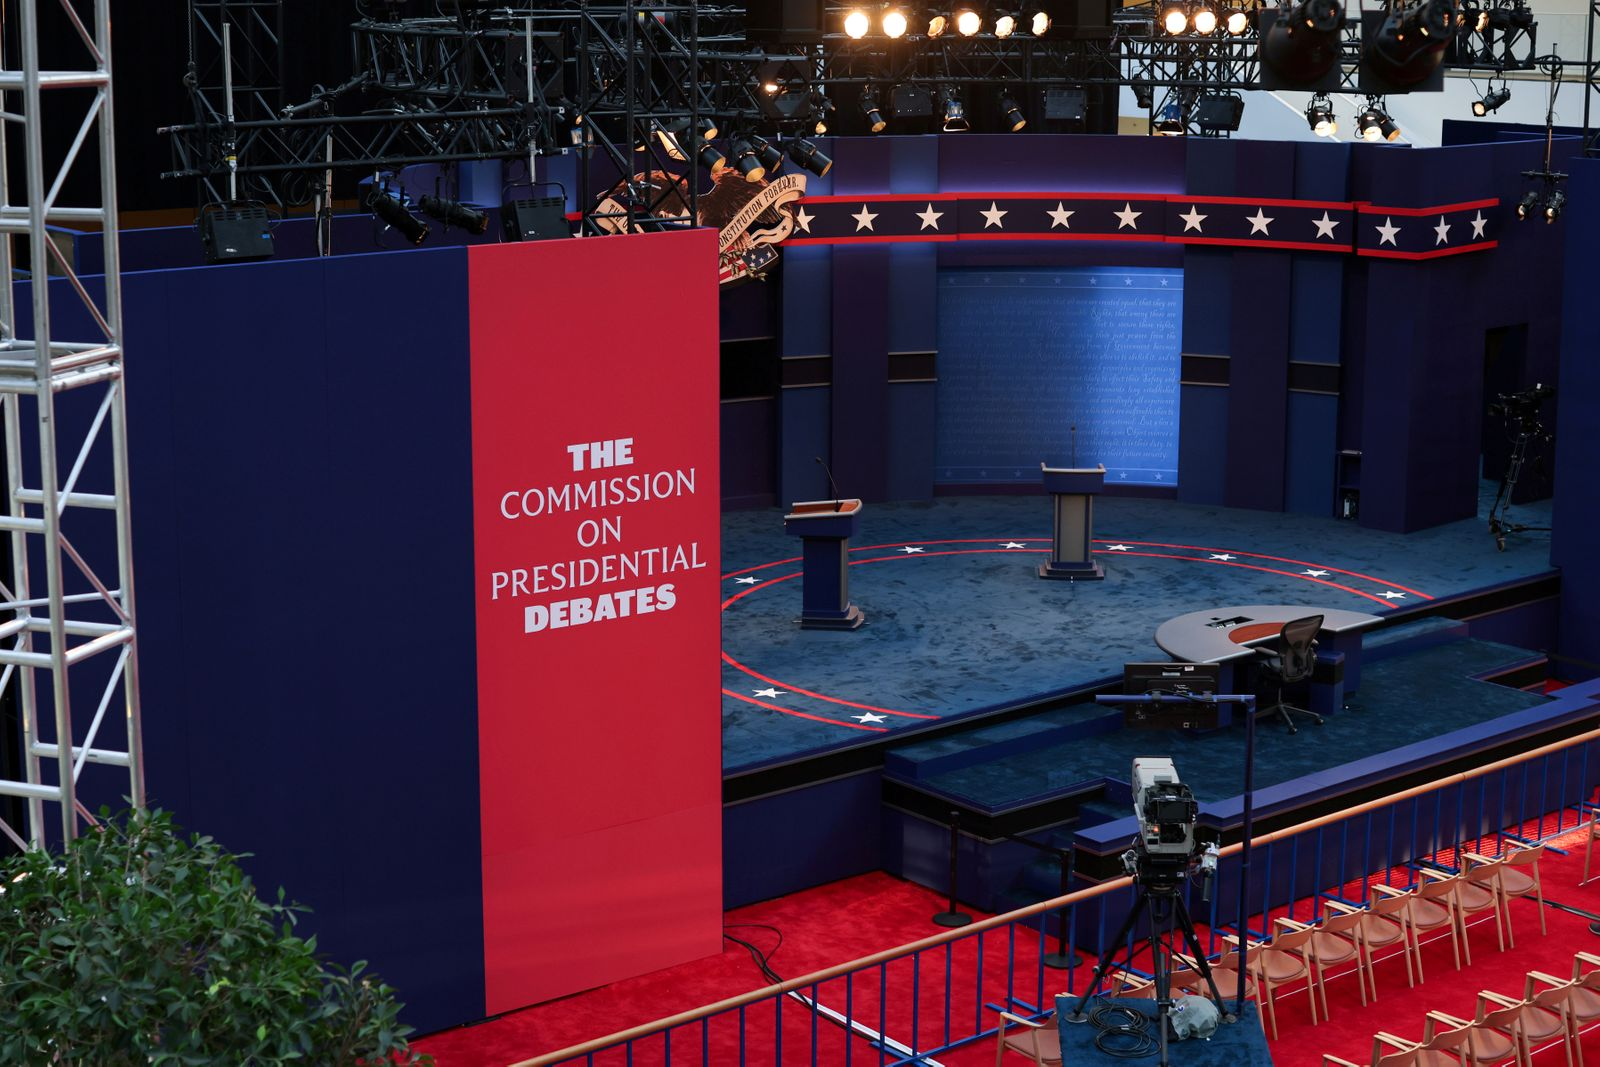 FILE PHOTO: Workers prepare for the first presidential debate between U.S. President Trump and Democratic nominee Biden in Cleveland, Ohio